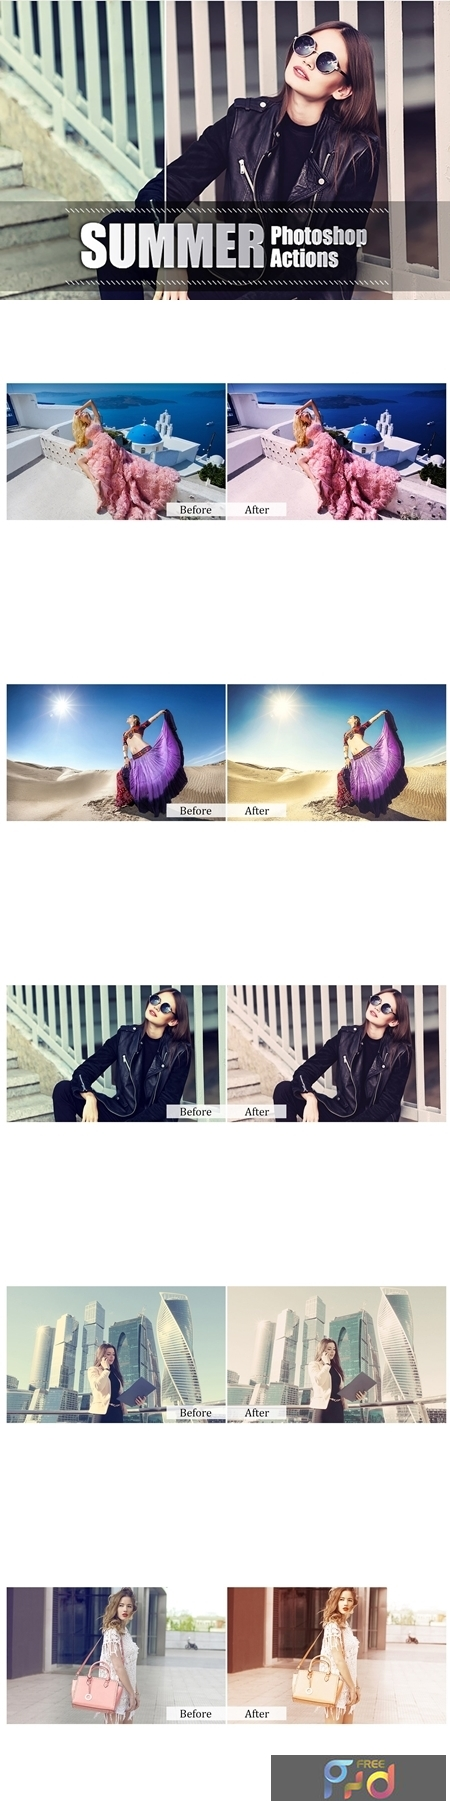 170 Summer Photoshop Actions 3937974 1